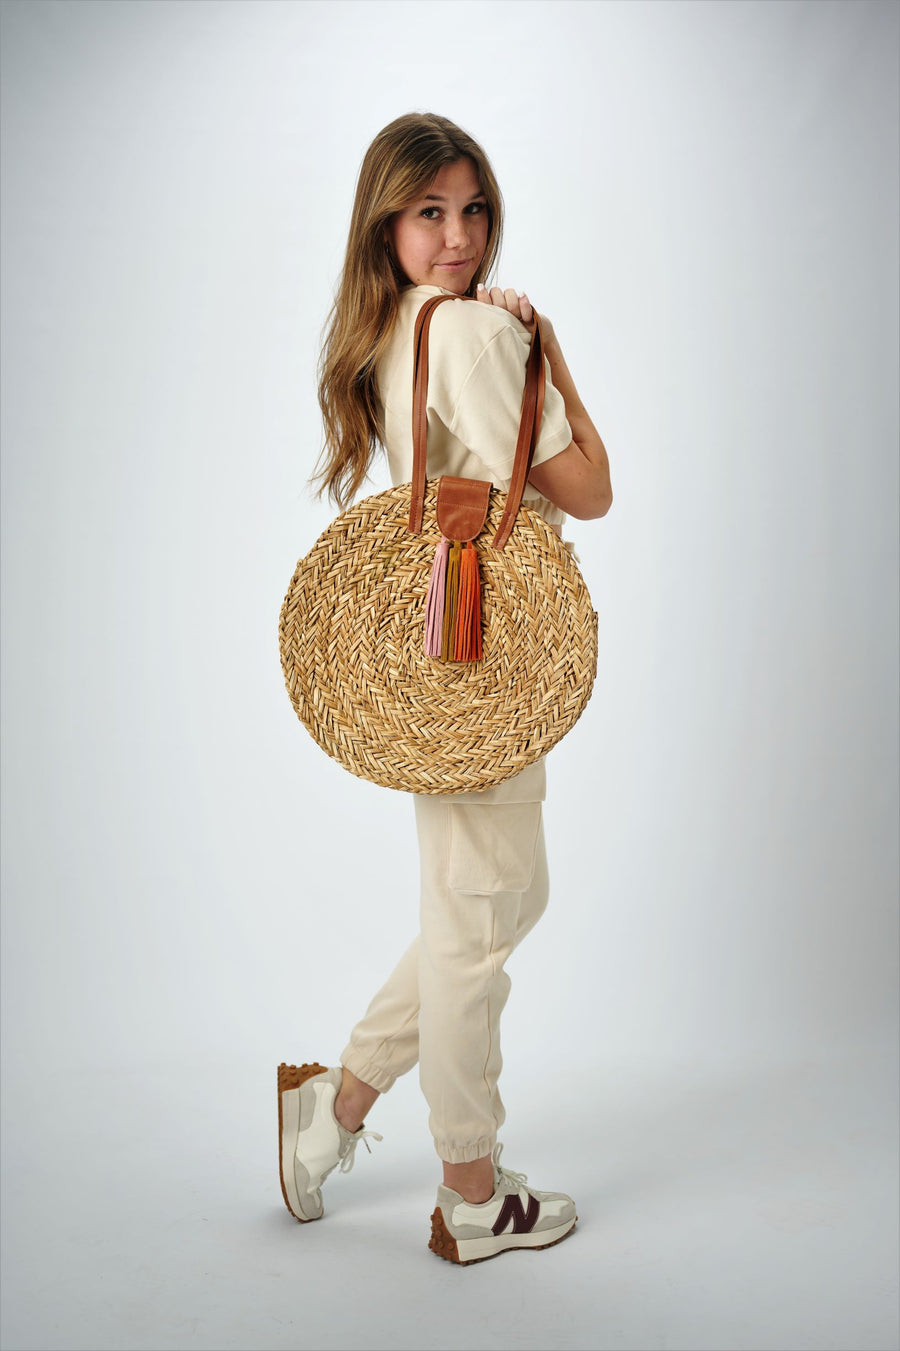 Person holding the Palmdale Straw Bag - a natural seagrass round straw bag with leather handles and suede tassel closure.